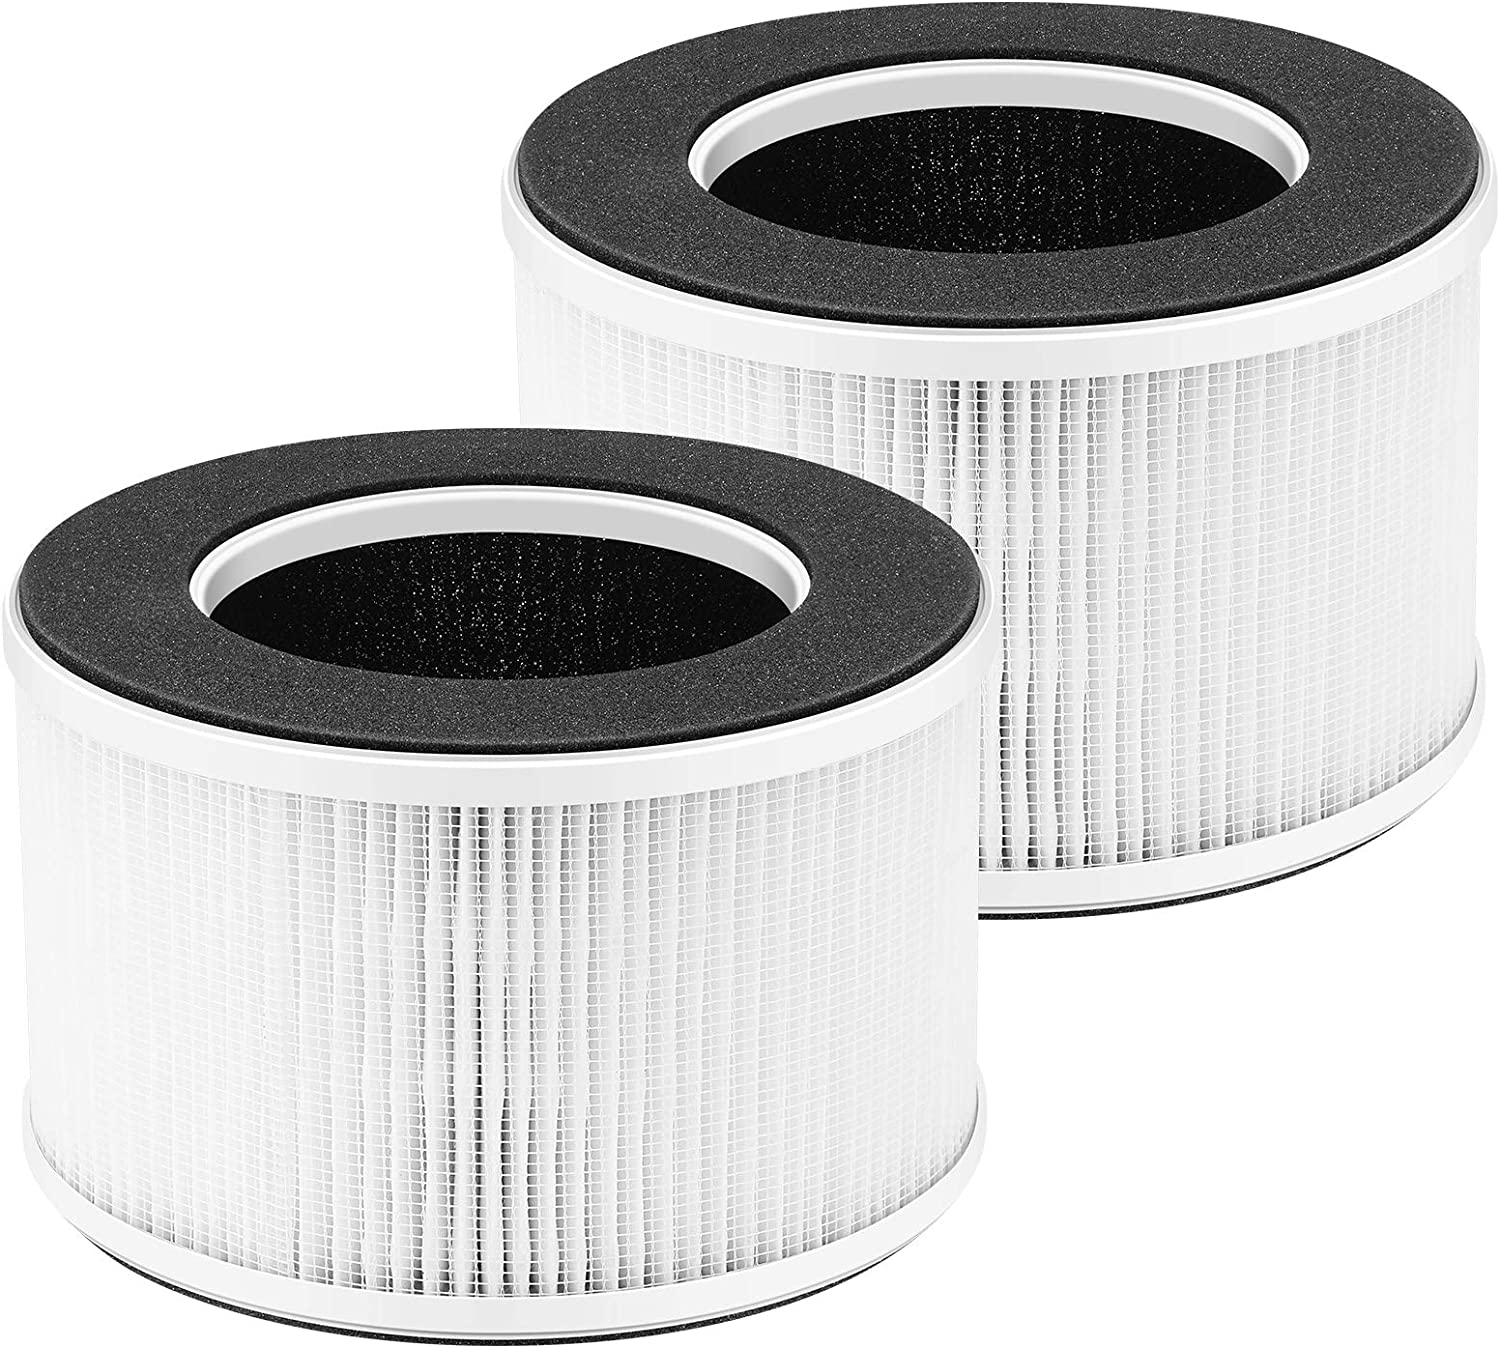 iSingo HME020020N True HEPA Replacement Filter Compatible for hOmeLabs Home 4-in-1 Compact HEPA Air Purifier Models HME020020N, AKJ050GE, 3-in-1 True HEPA Filter, Activated Carbon Filter, and Pre-filter (2-Pack)